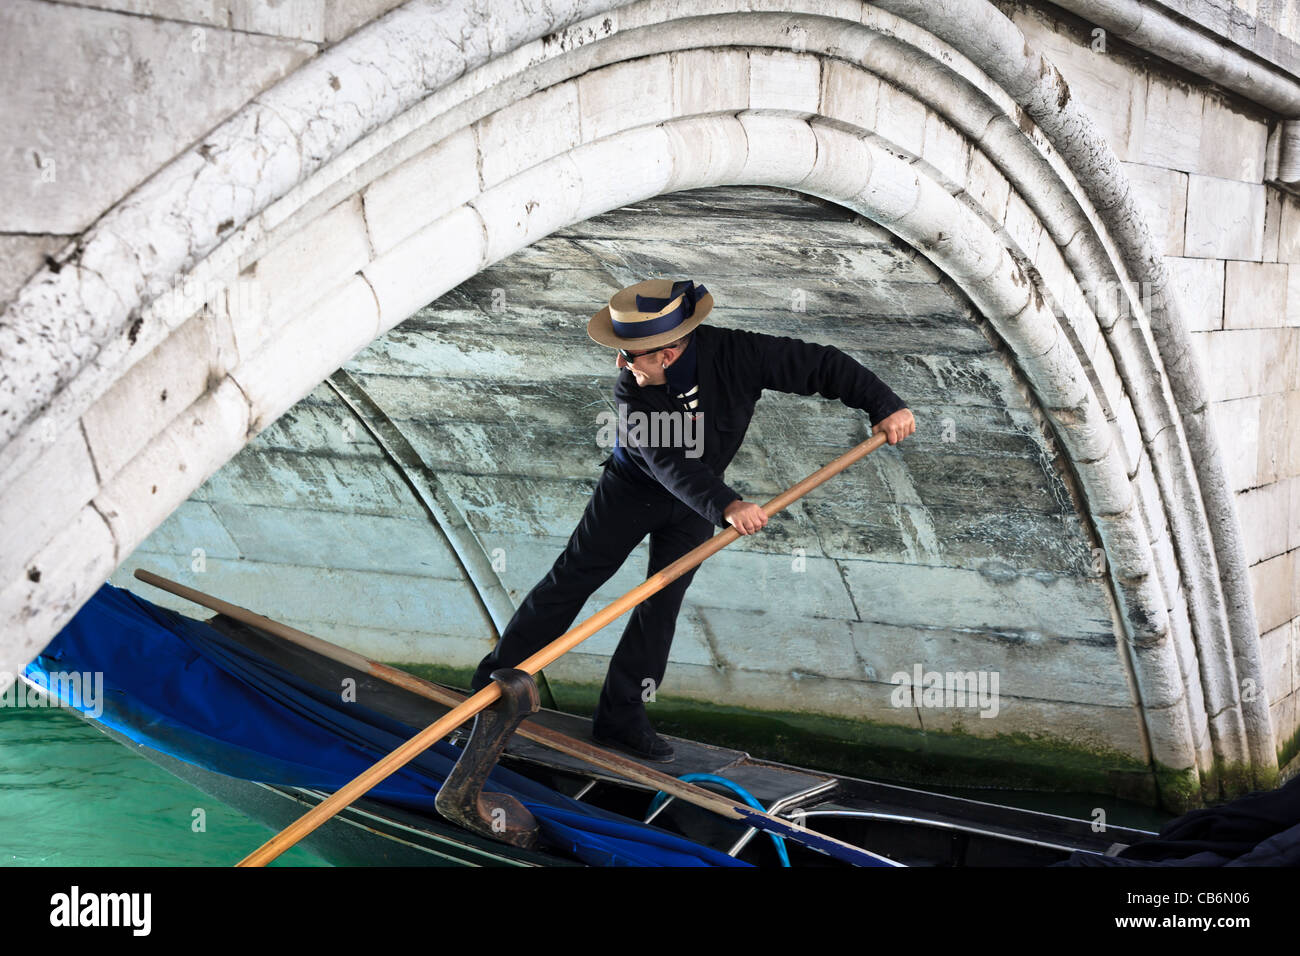 Gondolier and his gondola moving under a small bridge in Venice, Italy - Stock Image